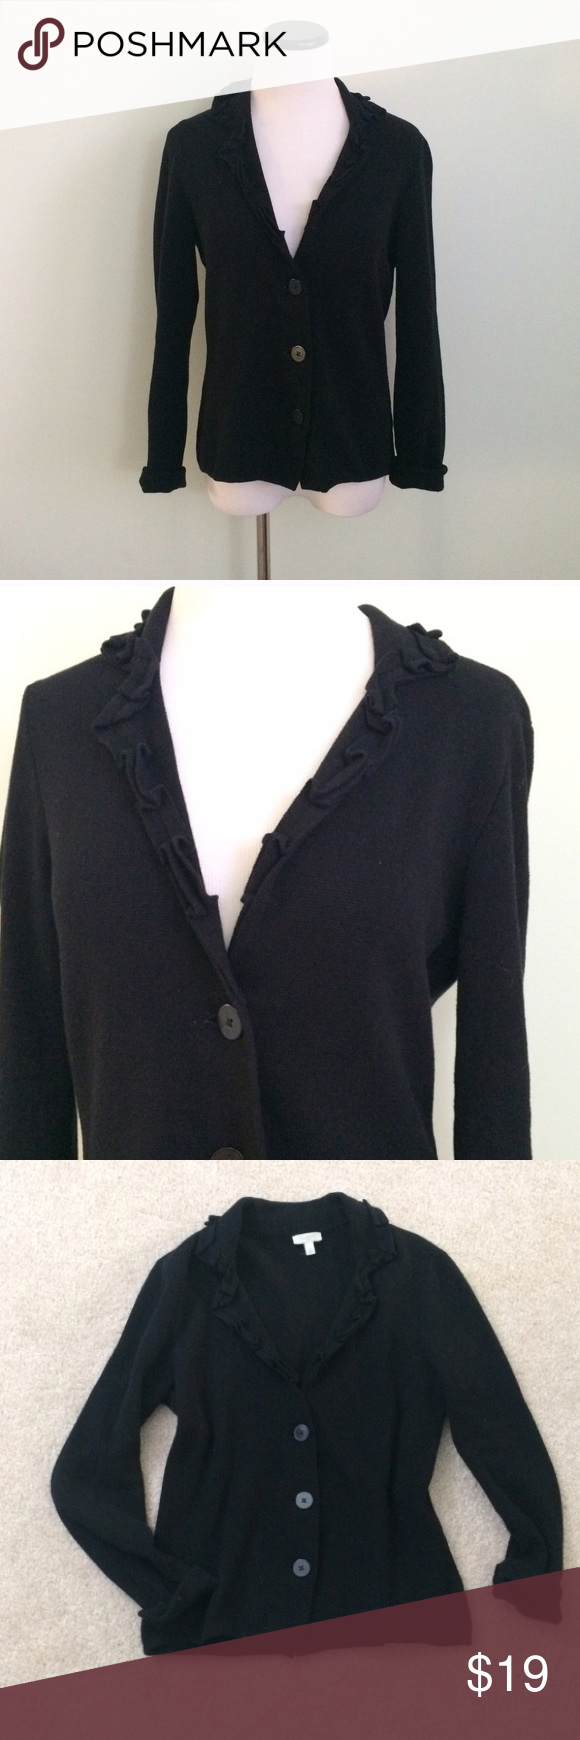 TALBOTS Black ruffle Cardigan Sweater Very gently worn. Black ...